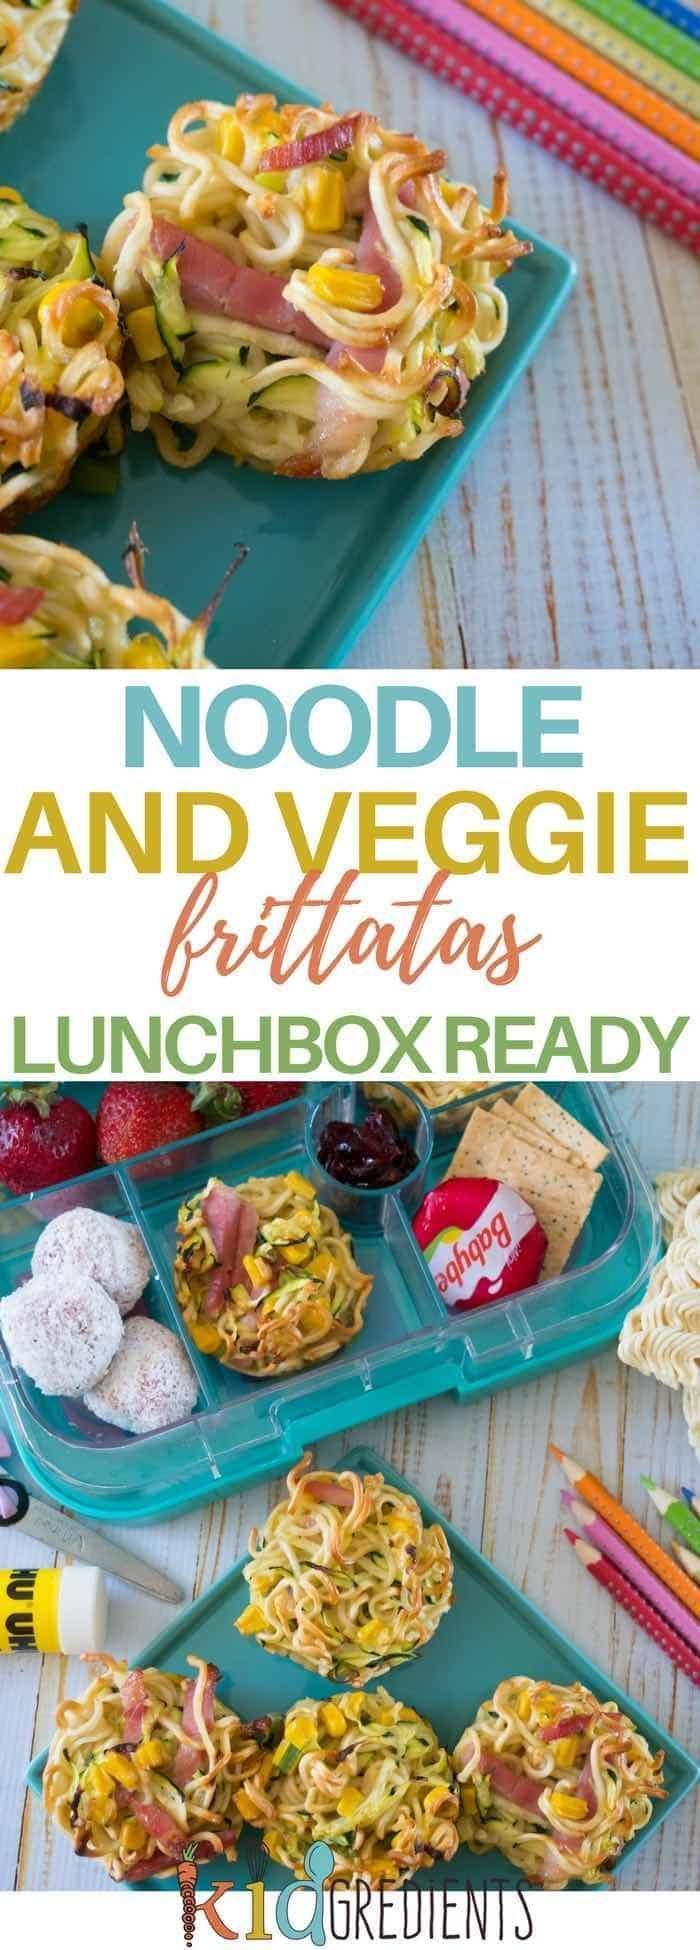 Noodle and veggie frittatas